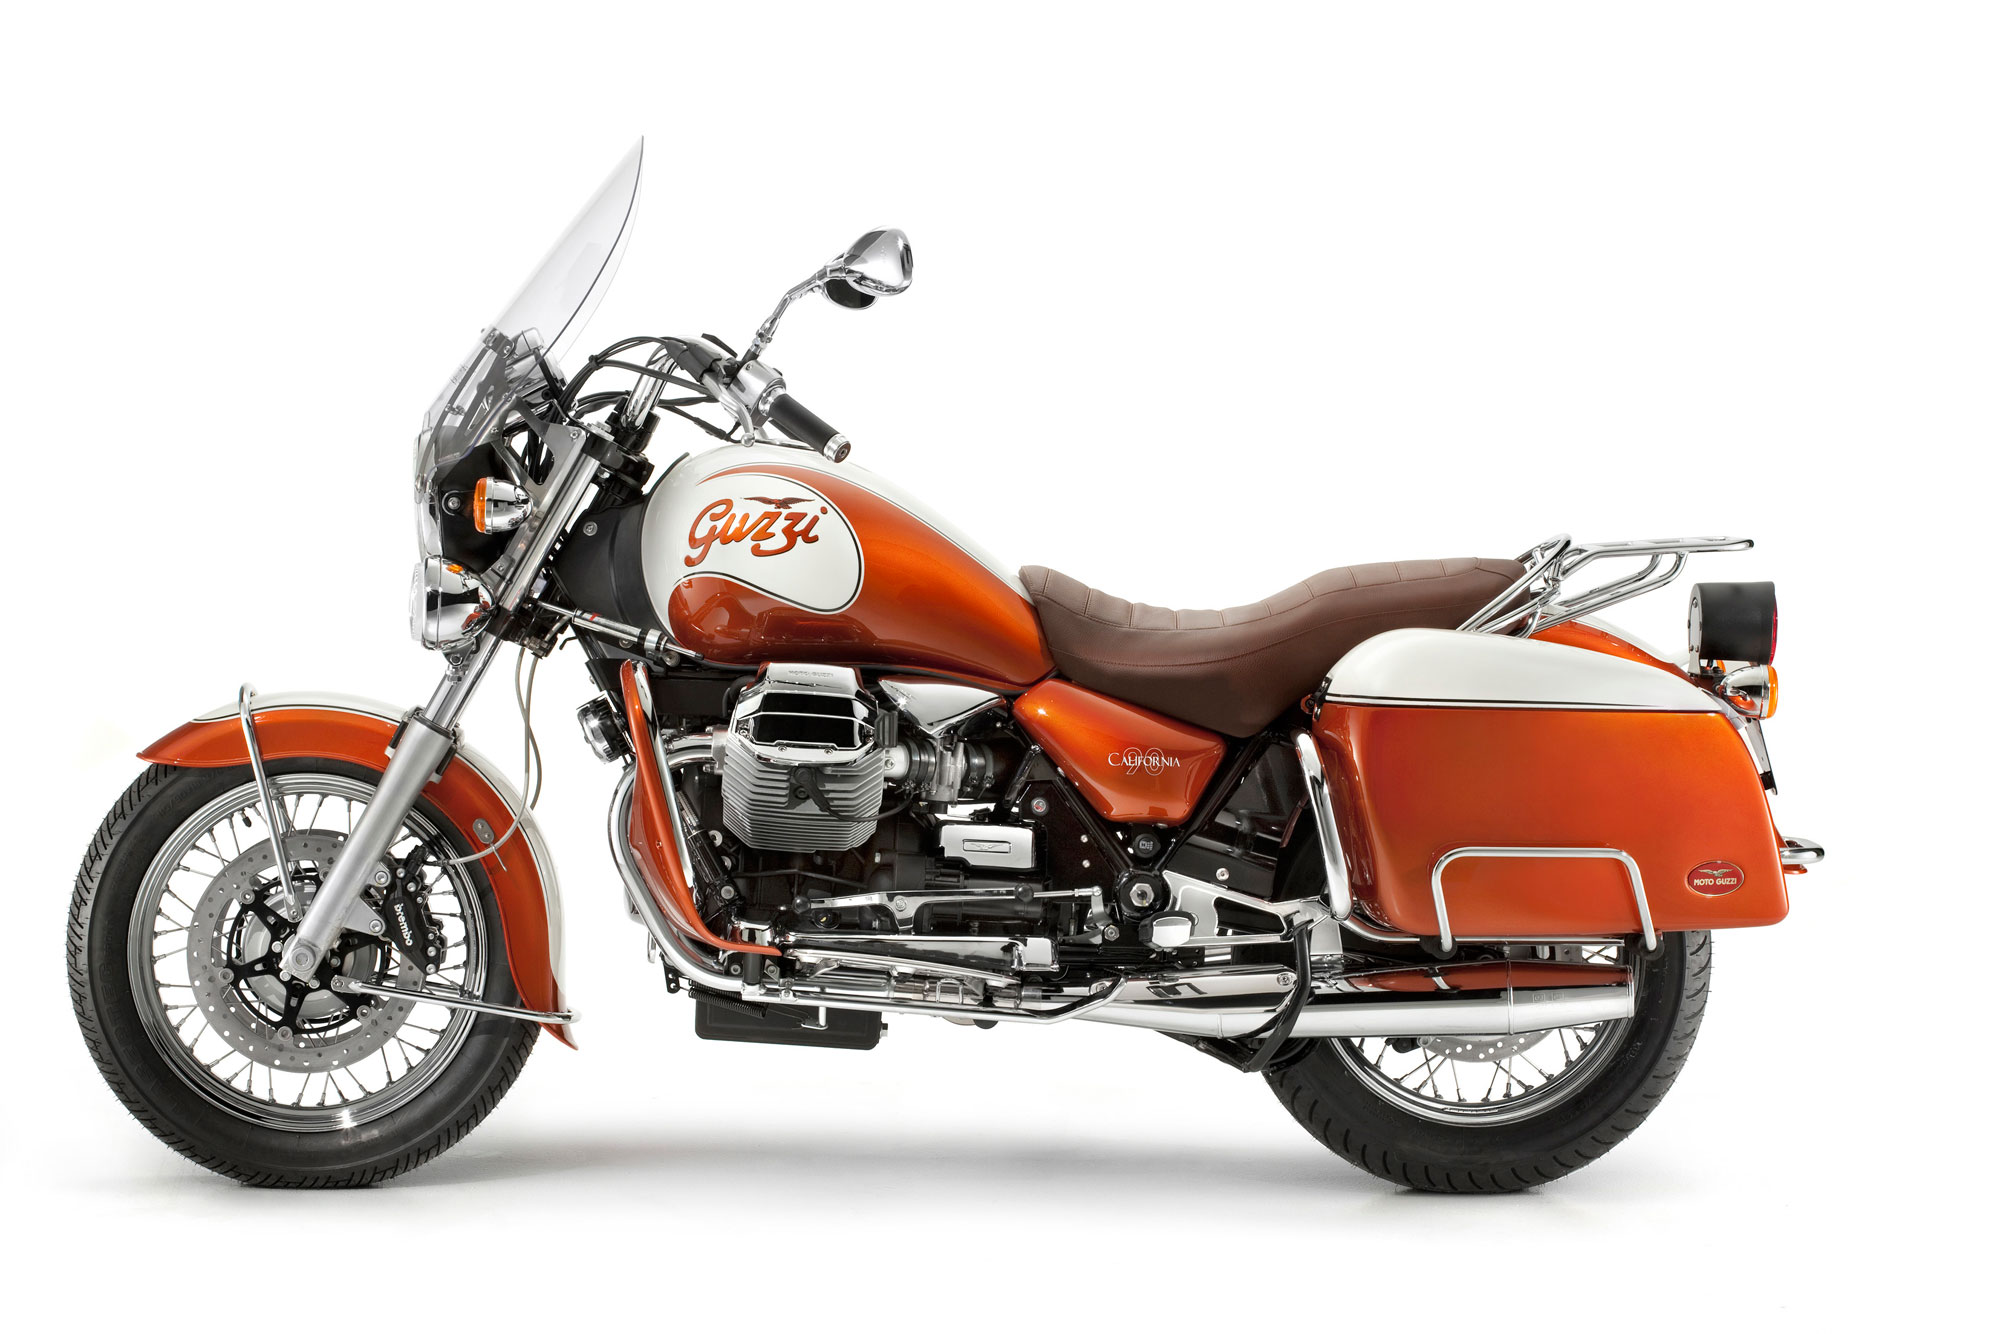 Moto Guzzi California 1100 i images #157191